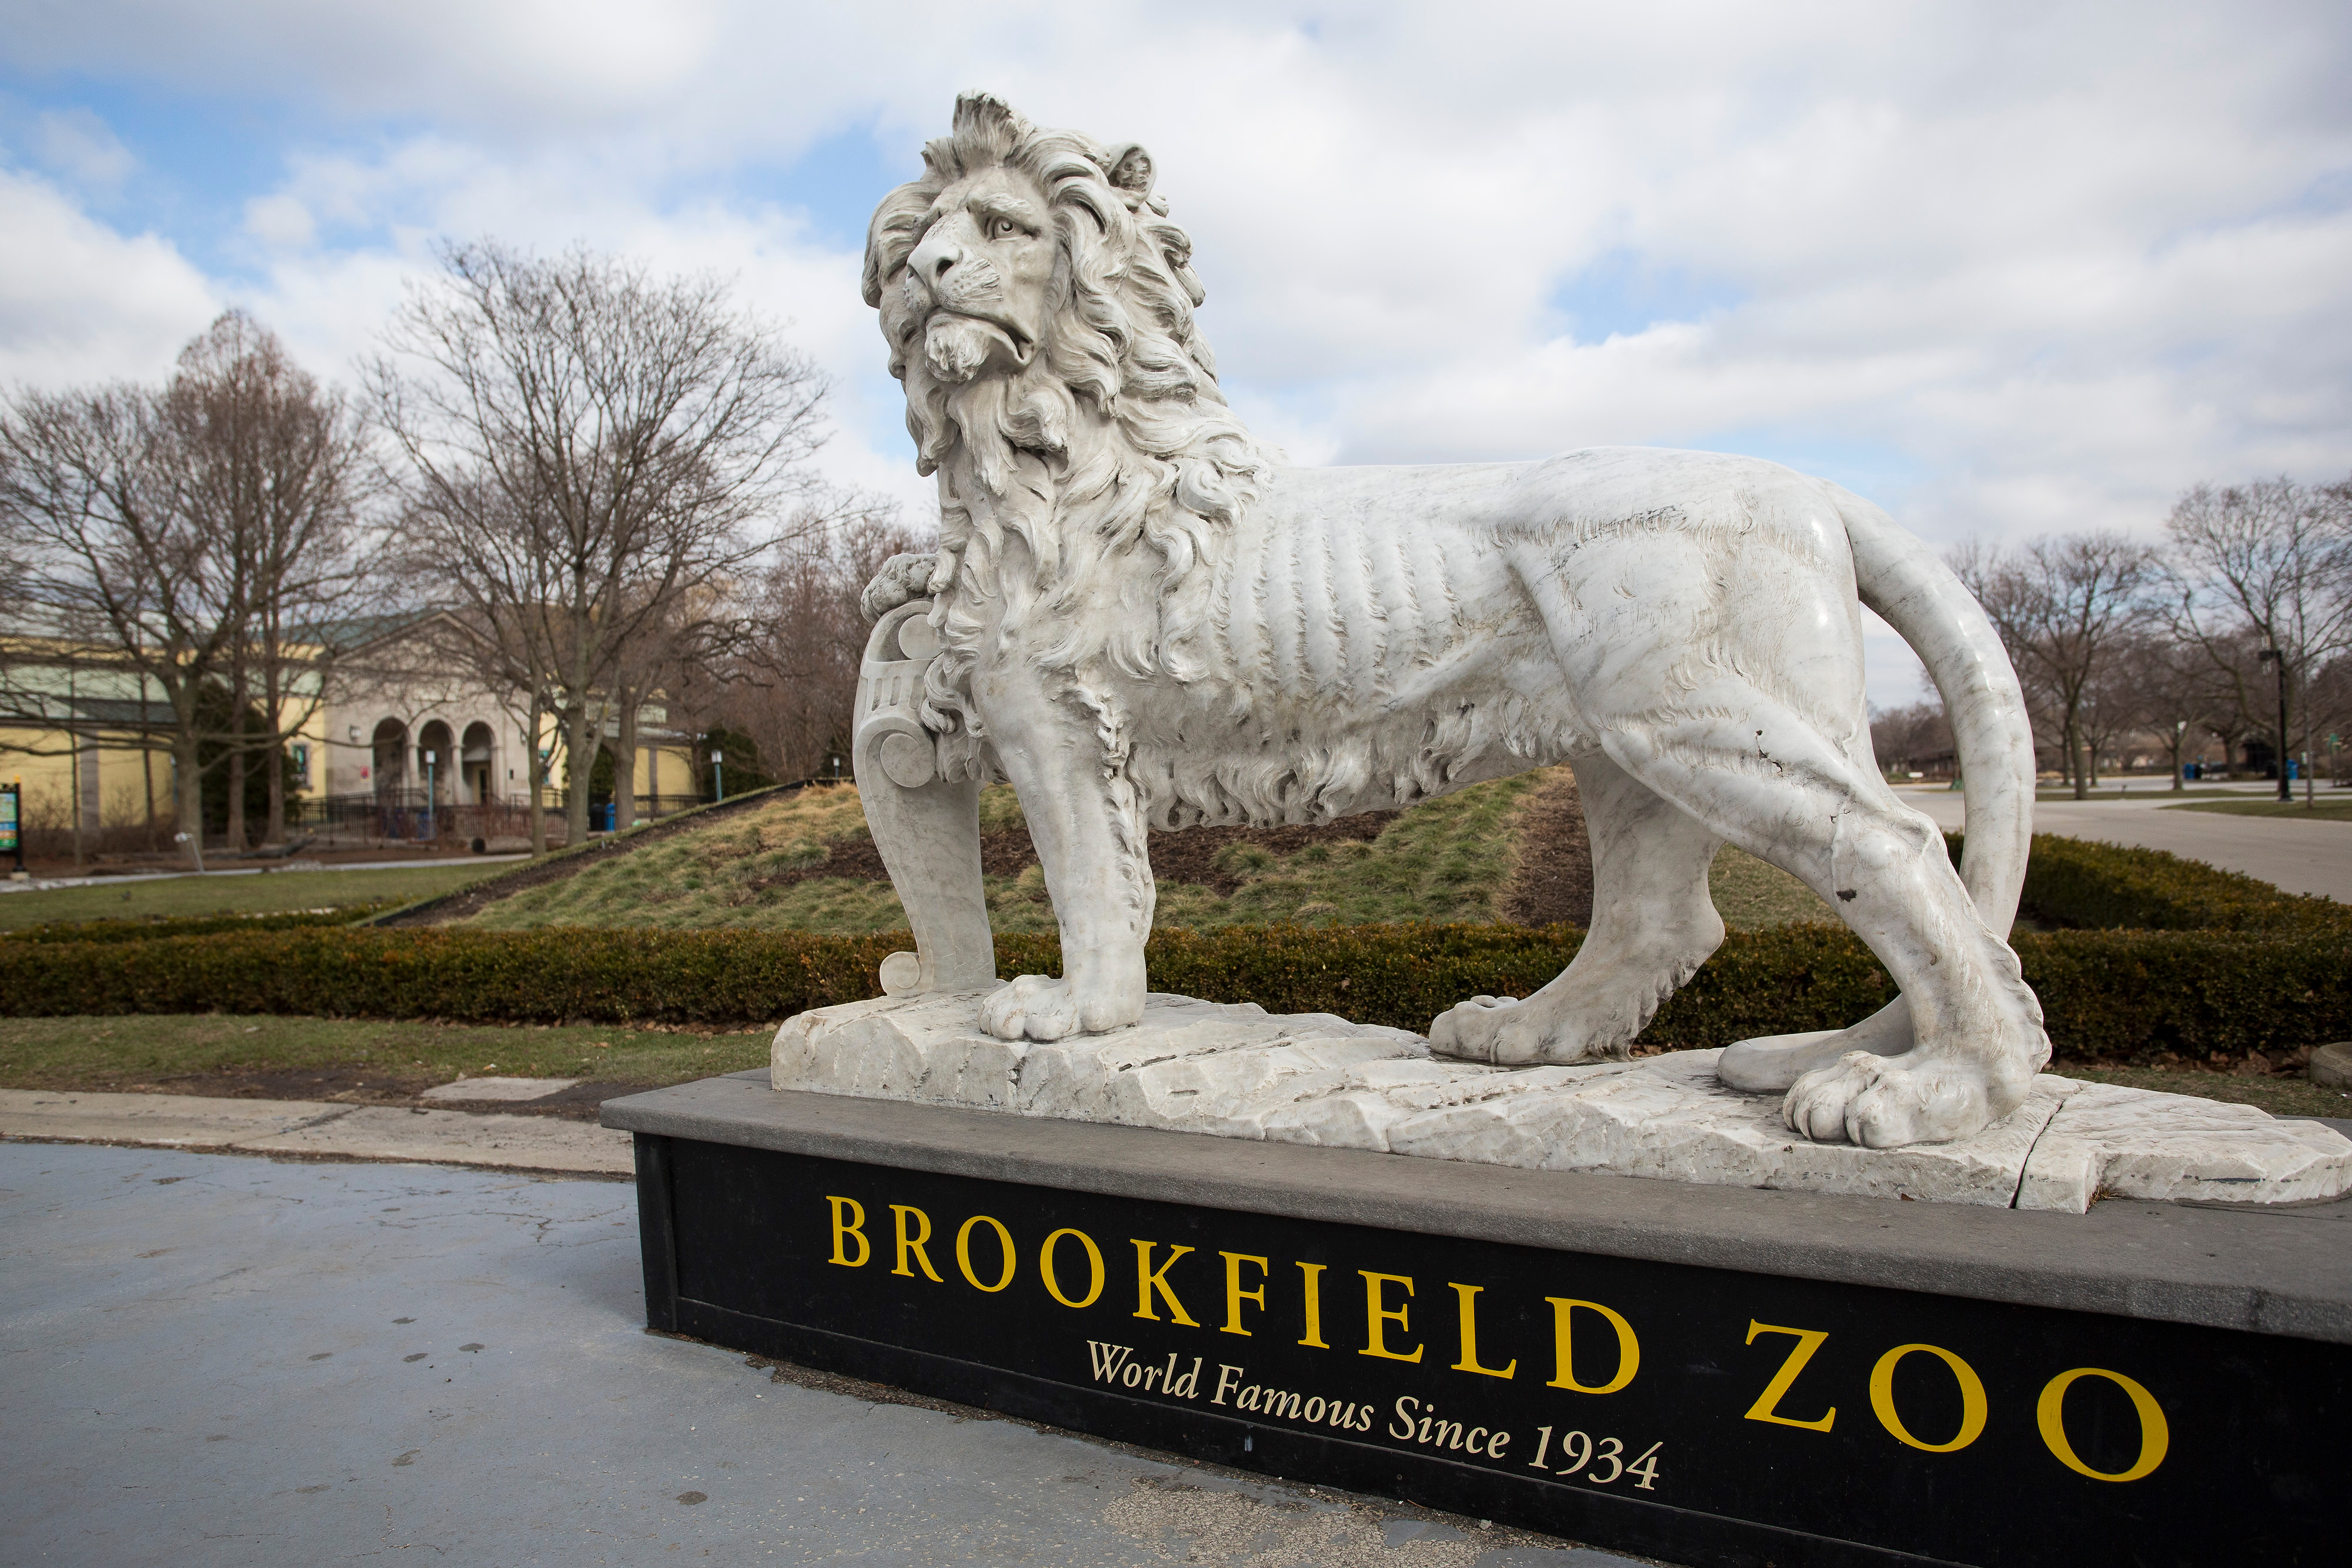 Brookfield Zoo is set to temporarily close Jan. 1 due to the pandemic.